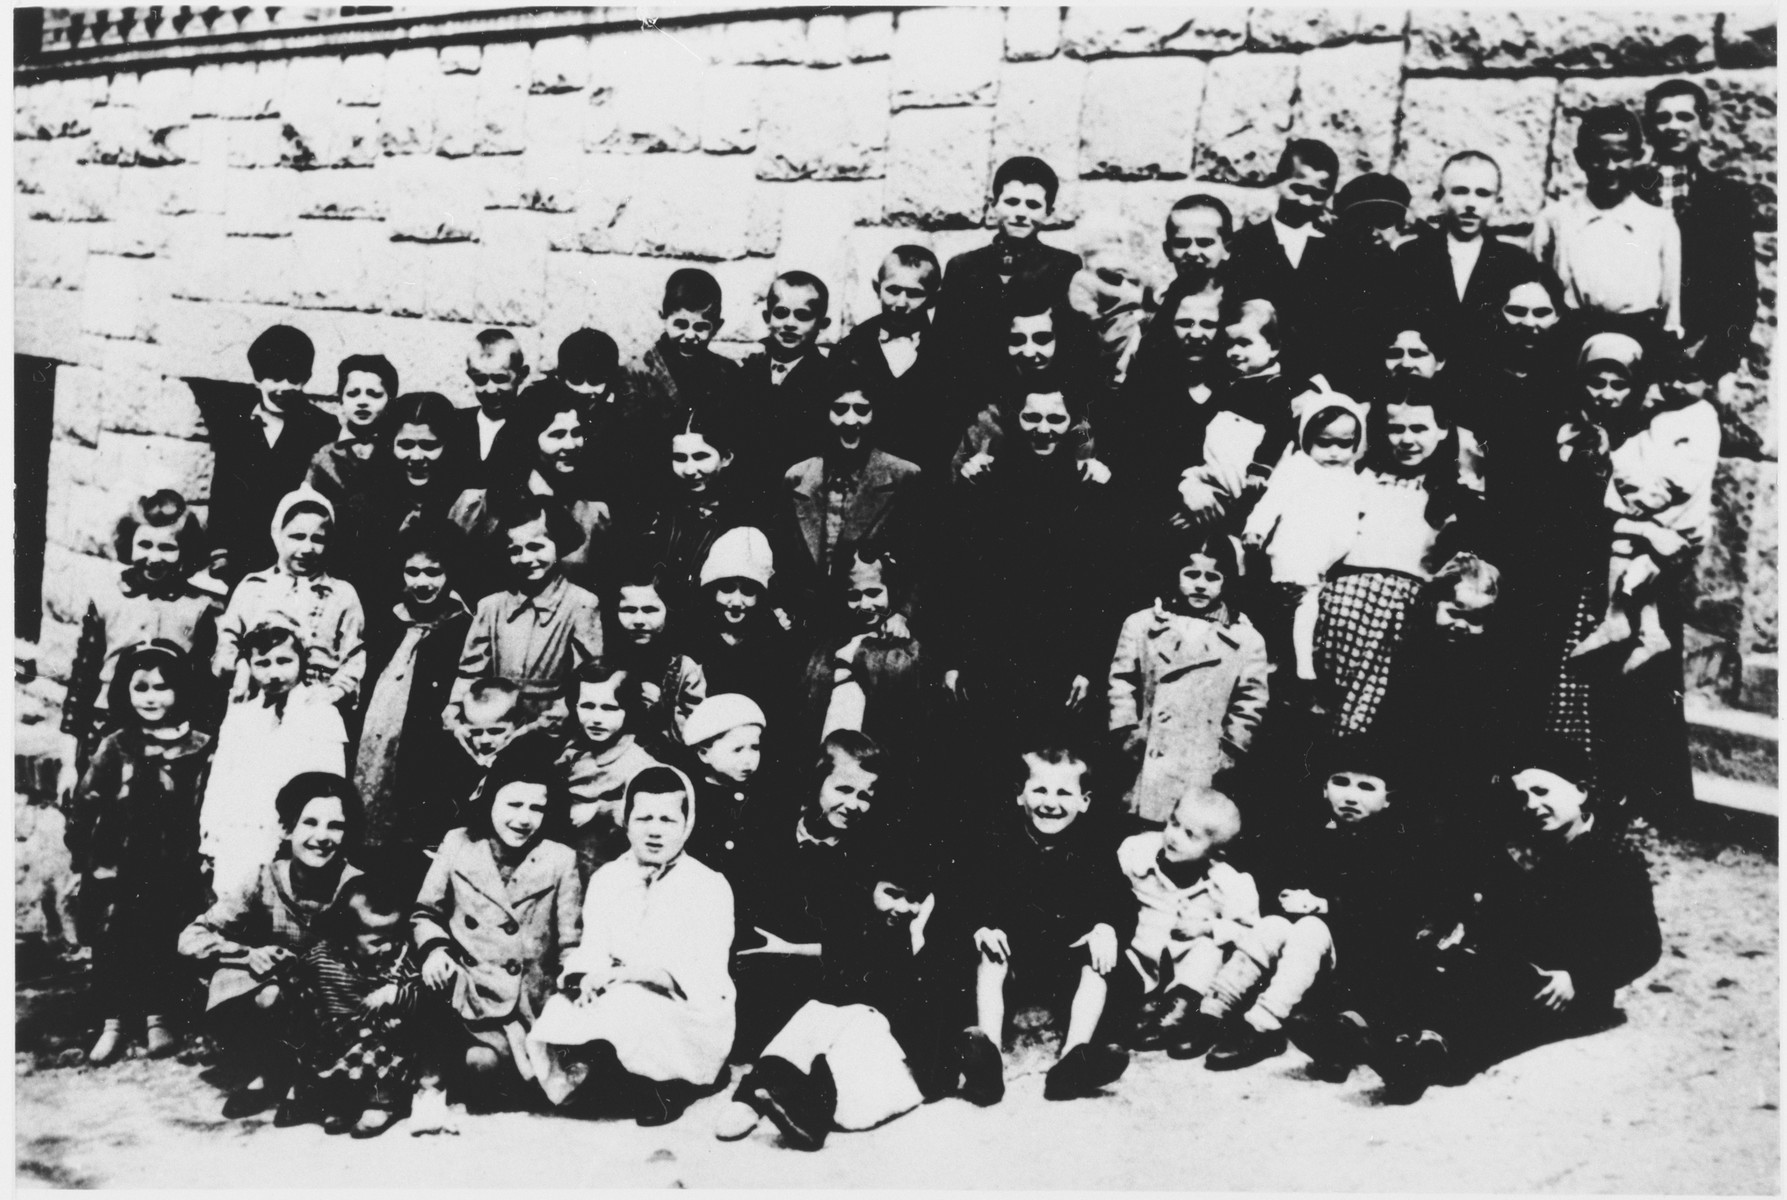 Group portrait of children who are being separated from their mothers by Ustasa guards, at the entrance to the Stara Gradiska concentration camp.